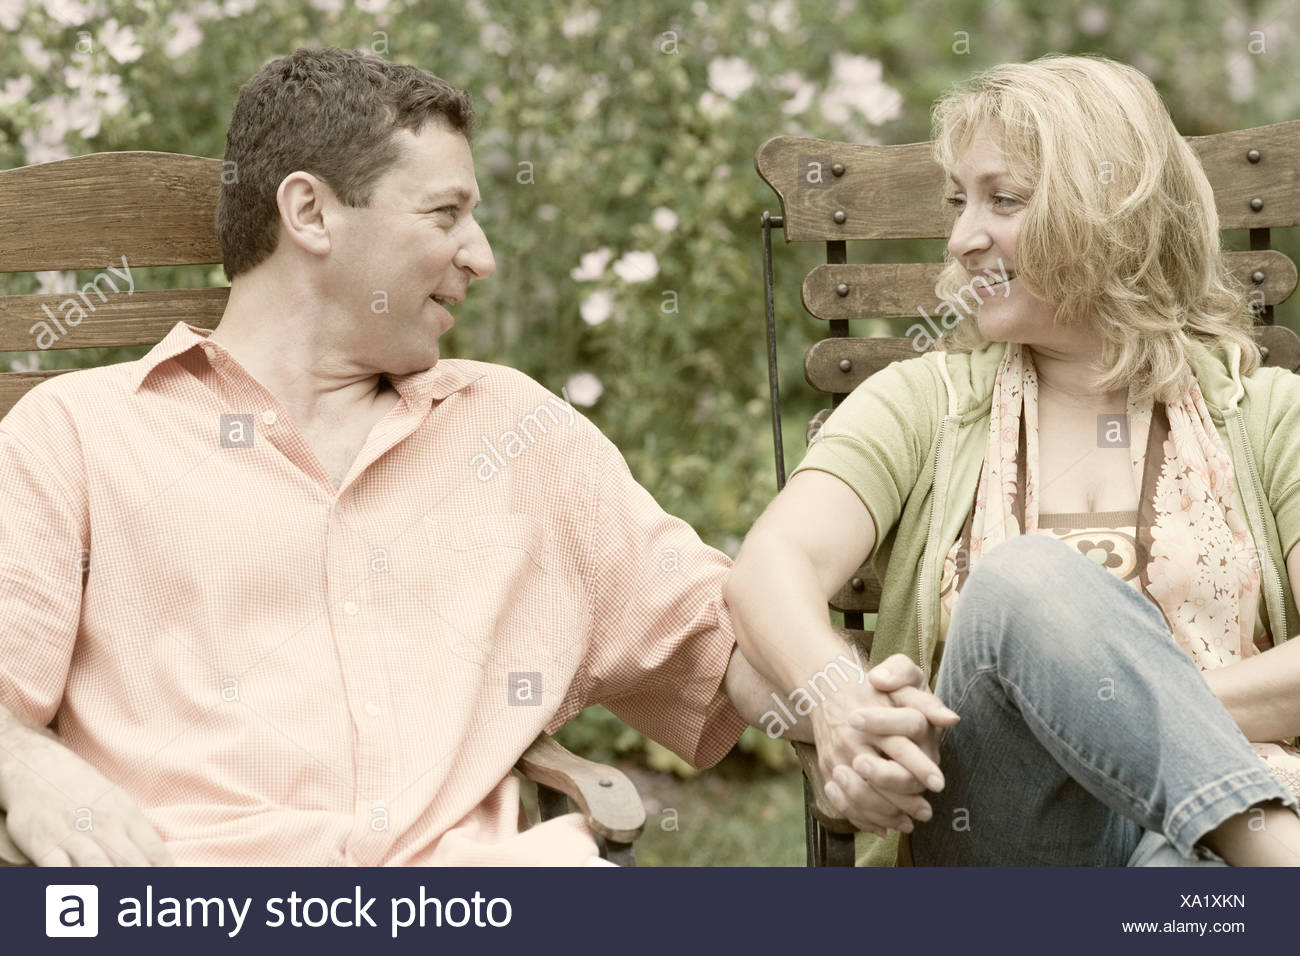 Mature couple sitting on chairs and holding each other's hands Stock Photo